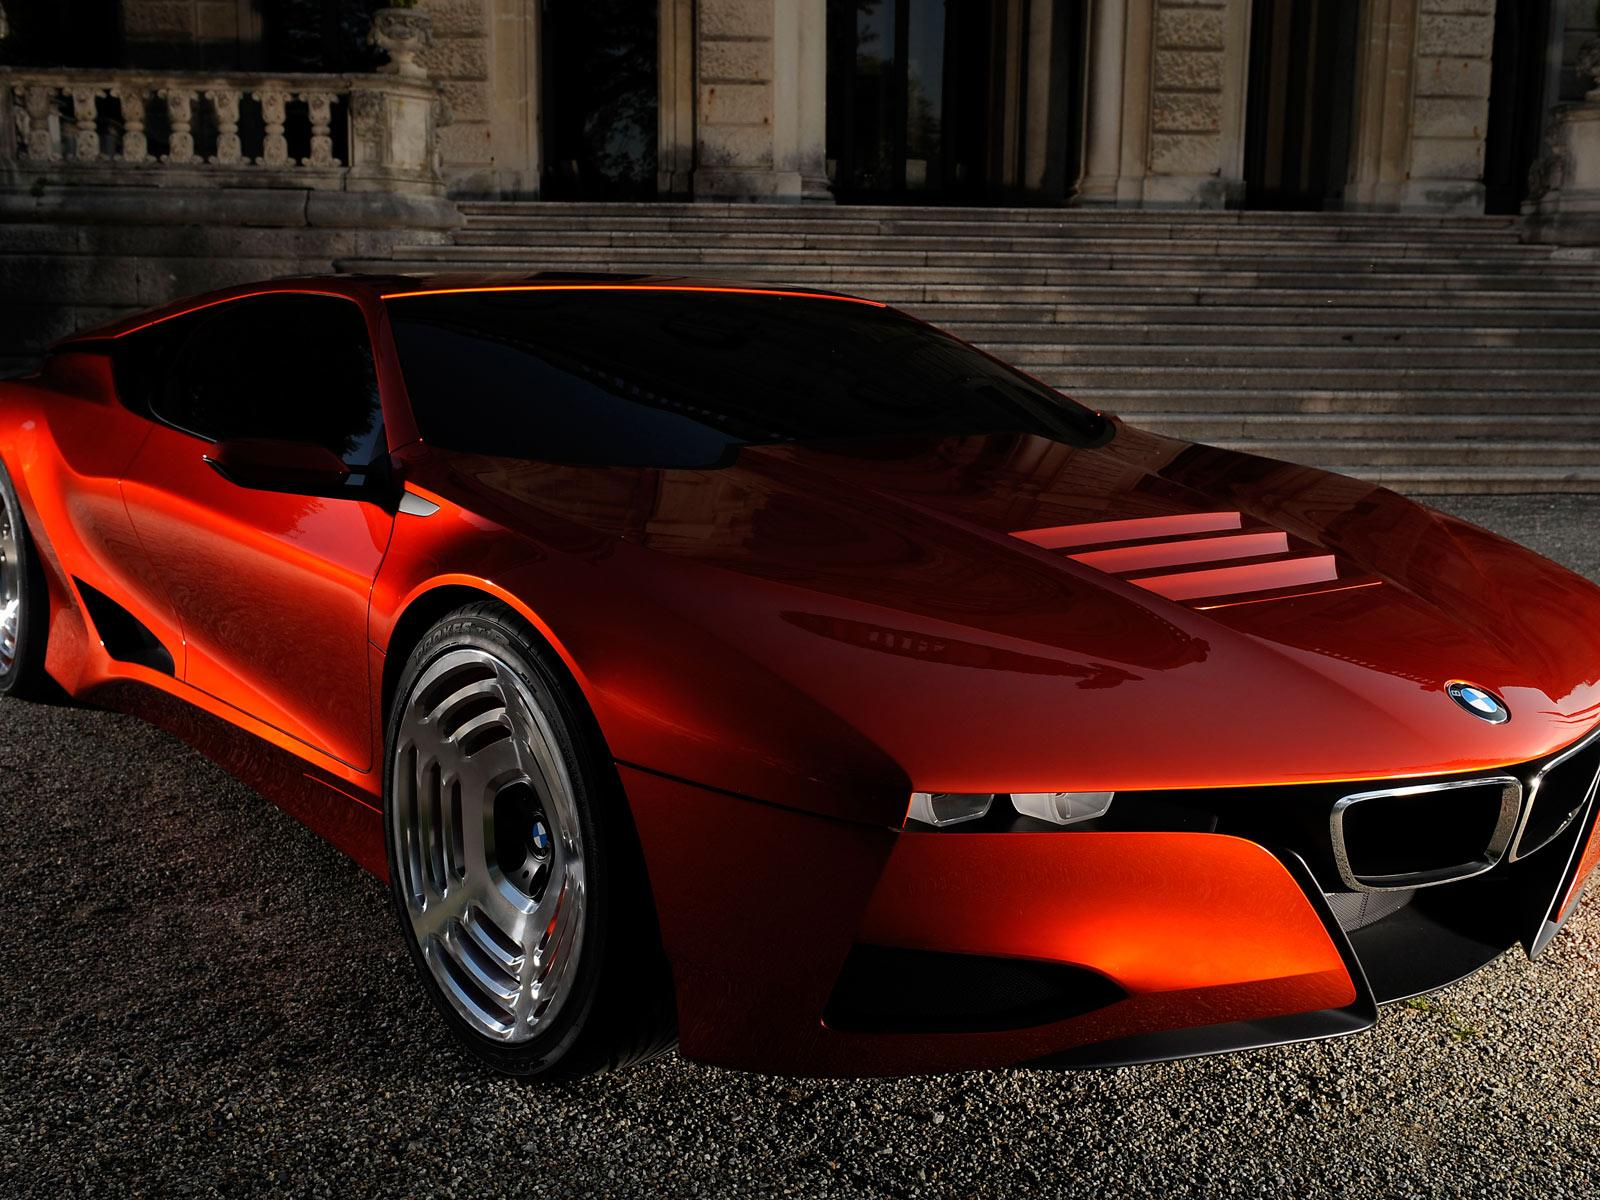 Free 3d wallpapers download bmw car wallpapers hd - Bmw cars wallpapers hd free download ...